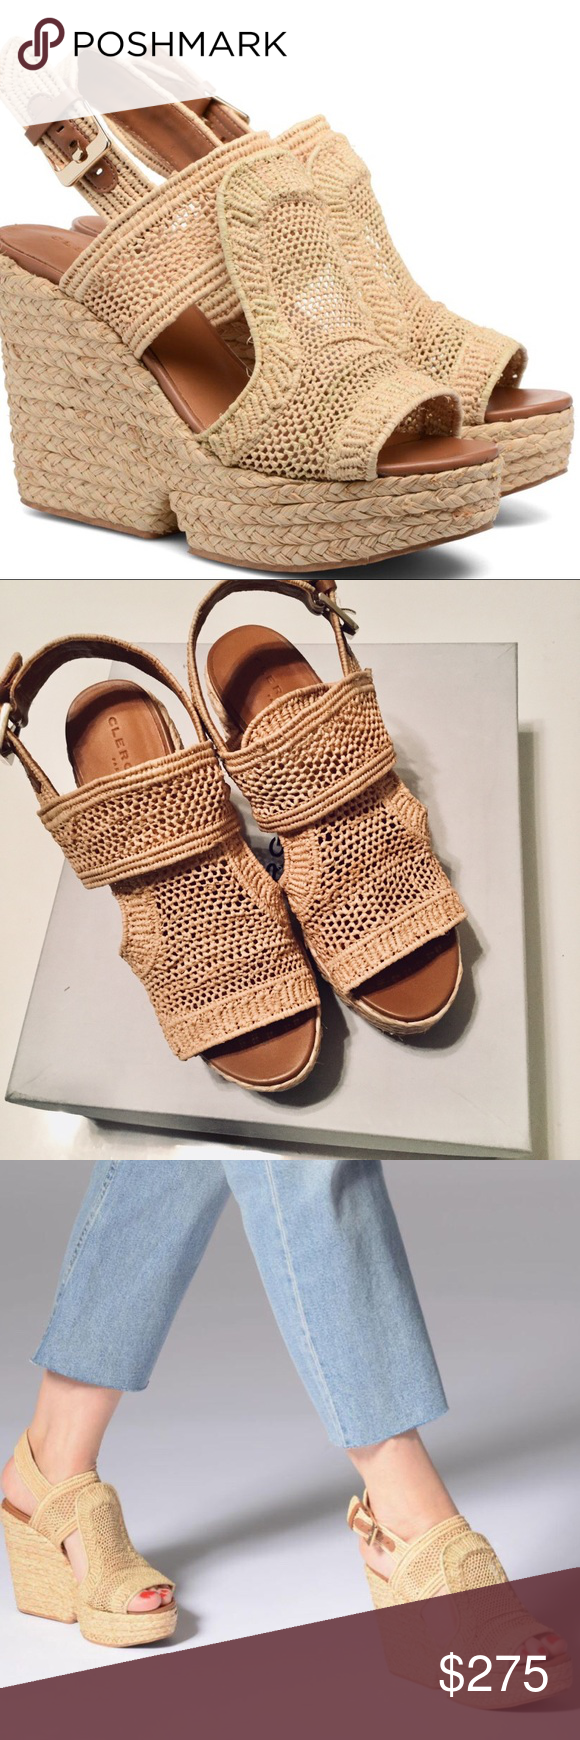 9b6a86b7fdc Robert Clergerie Dypaille Wedge Sandals Size 7.5 Robert Clergerie Dypaille  Wedge Sandals Size 7.5 EURO SIZE